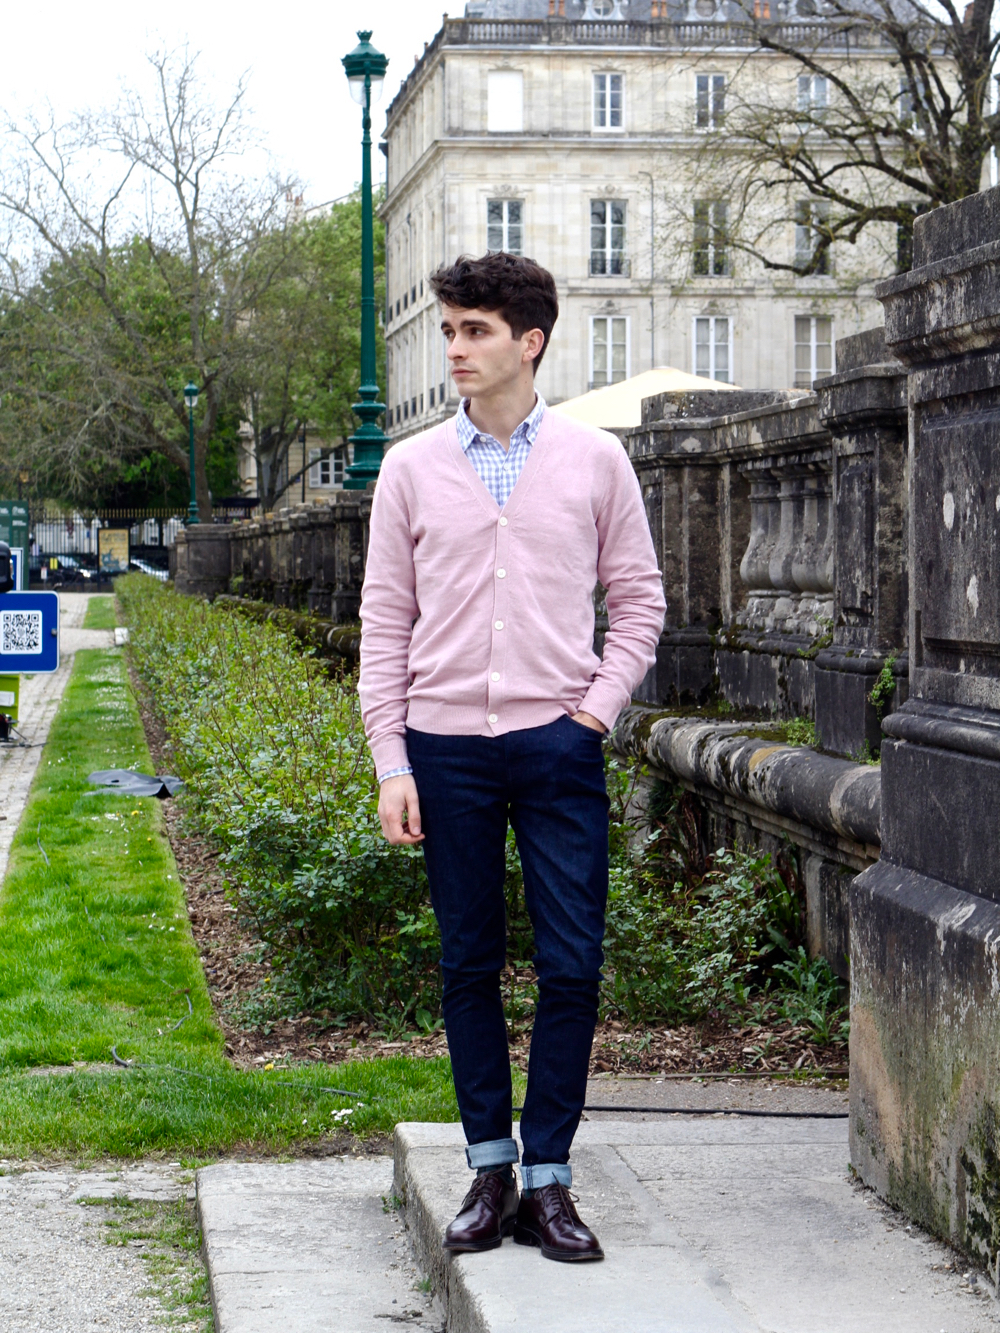 blog-mode-style-homme-paris-bordeaux-uniqlo-lifewear-lin-linen-cardigan-rose-chemise-carreaux-slim-diesel-chauures-balibaris-chaussettes-royalties - 2 (1)